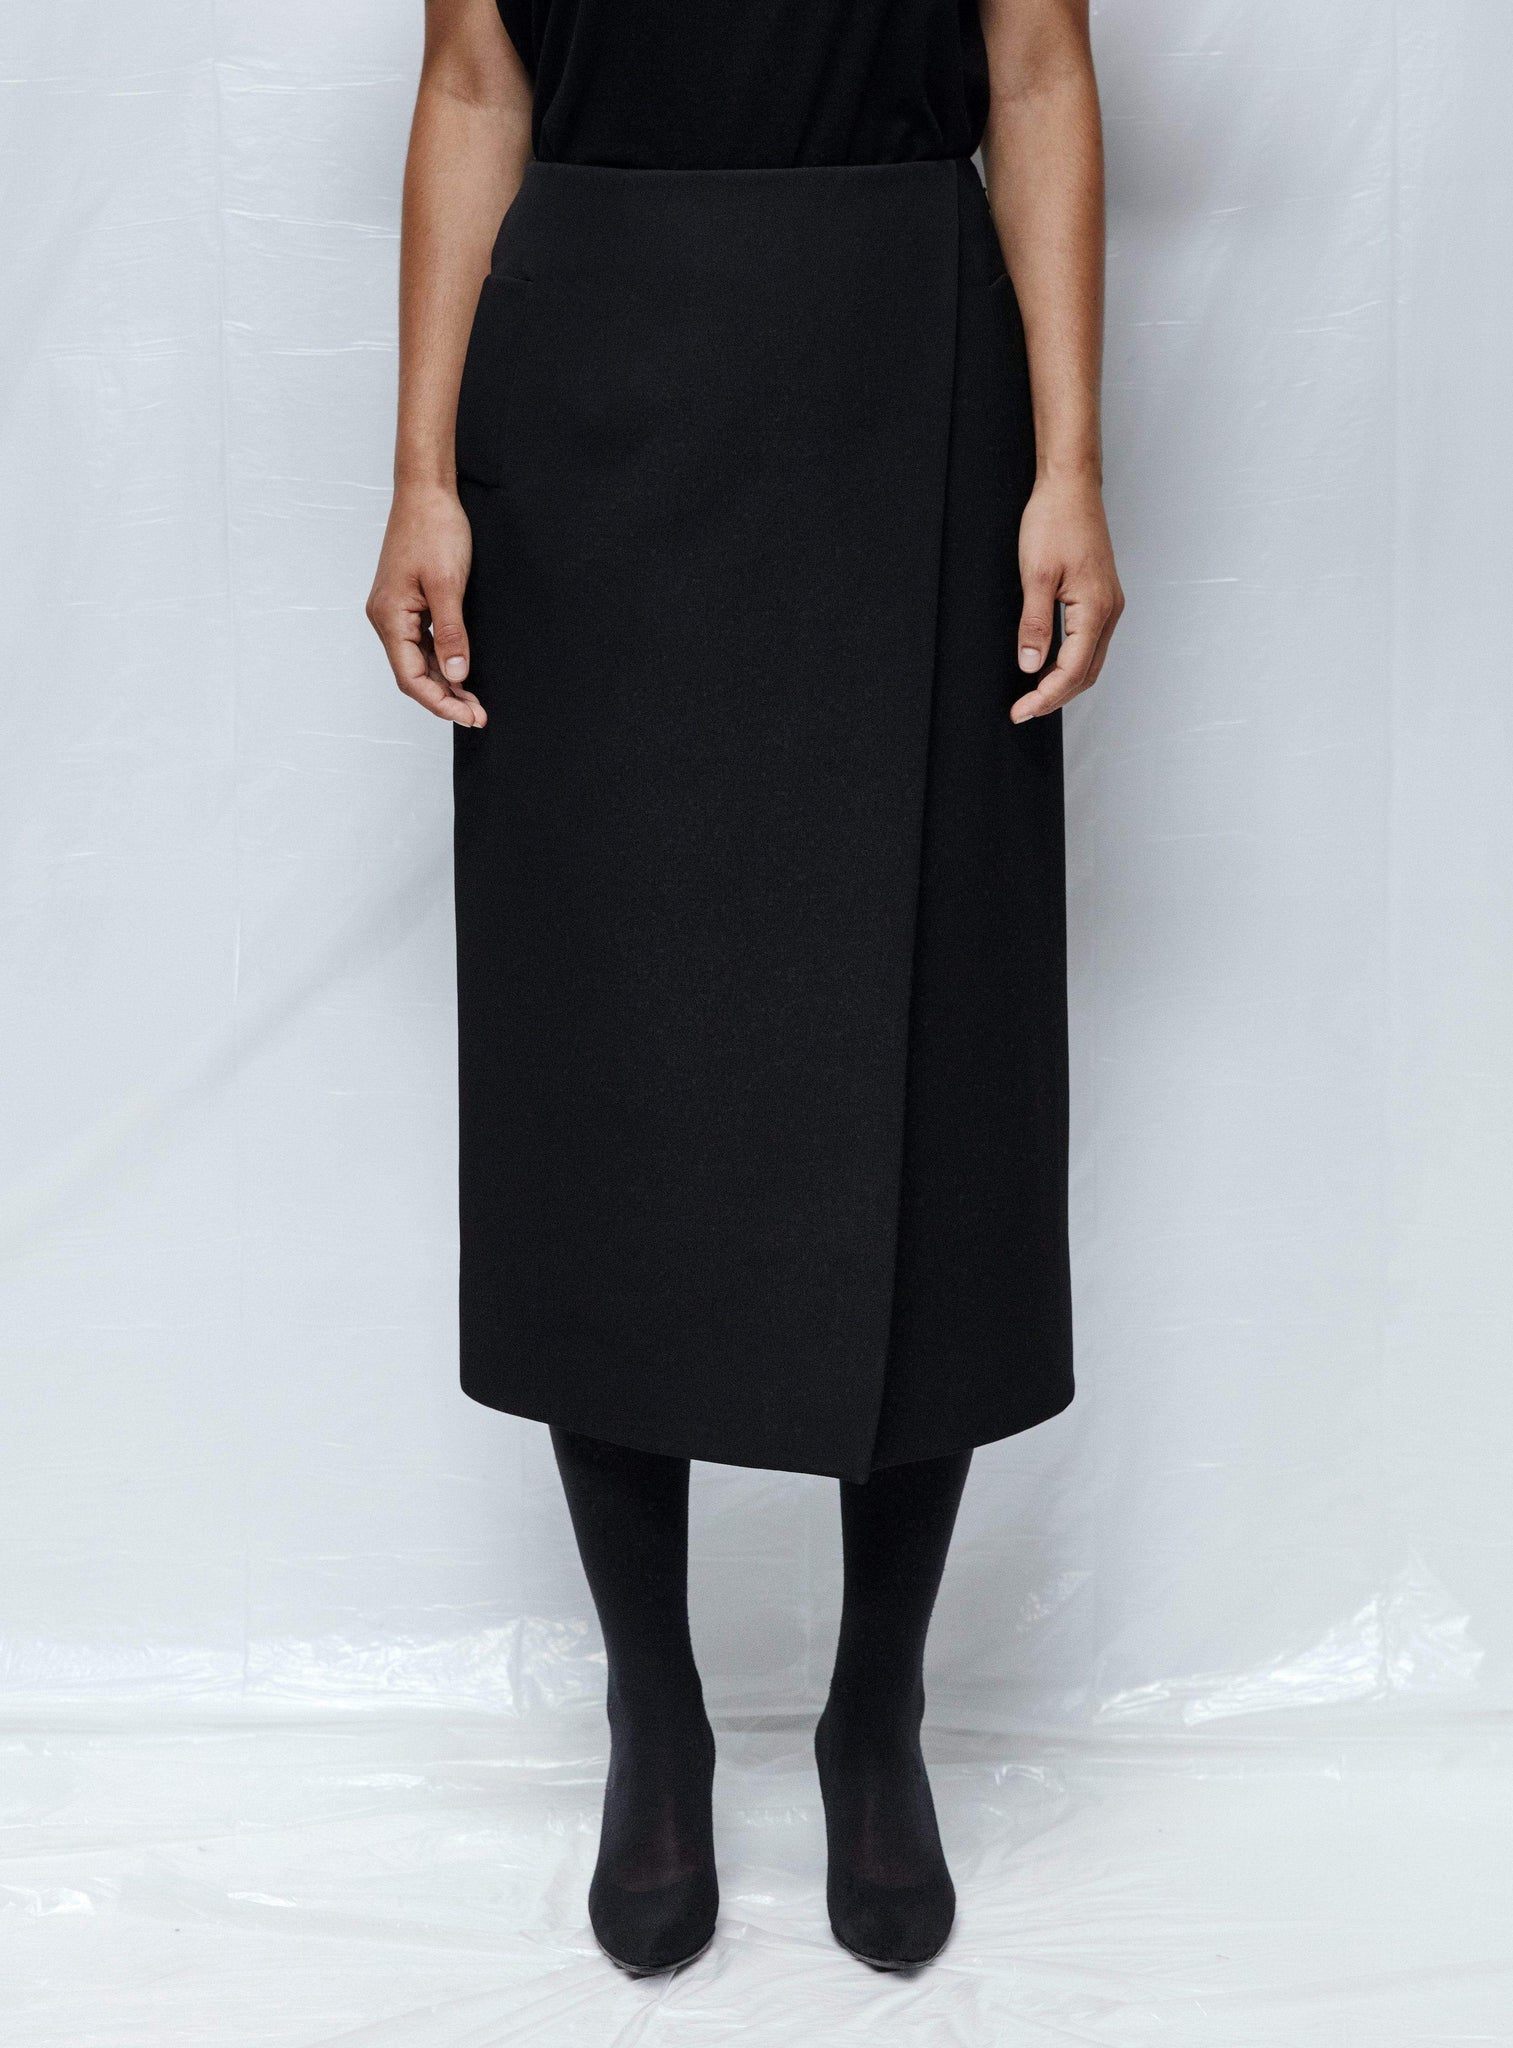 Wardrobe NYC Bottoms Skirt |W01